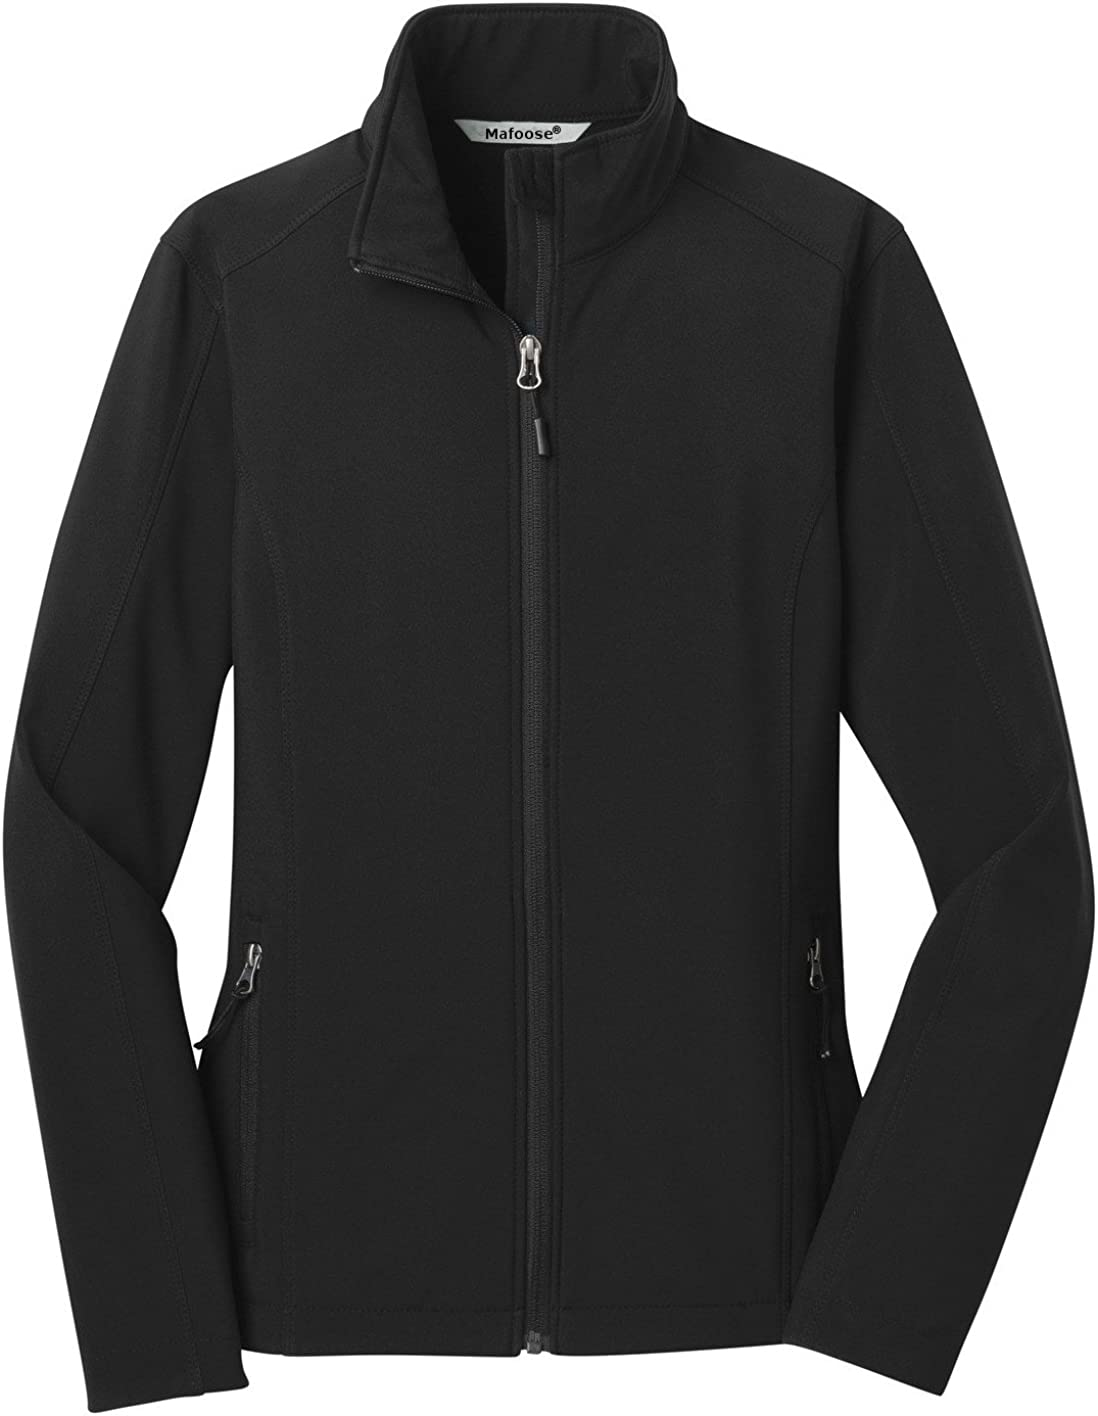 Max 85% OFFicial mail order OFF Mafoose Women's Core Jacket Soft Shell